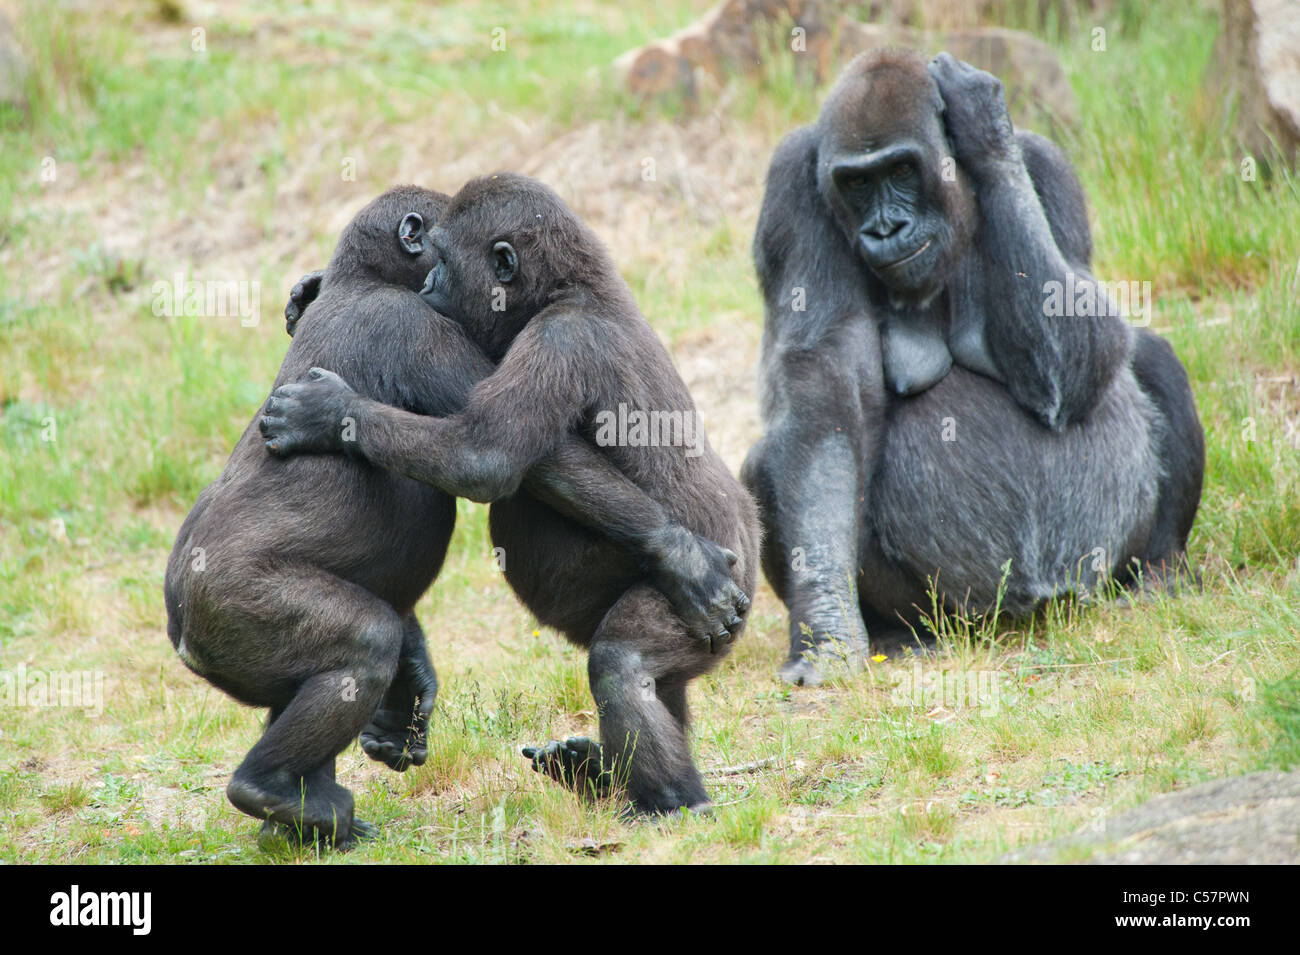 Two young gorillas dancing while the mother is watching - Stock Image